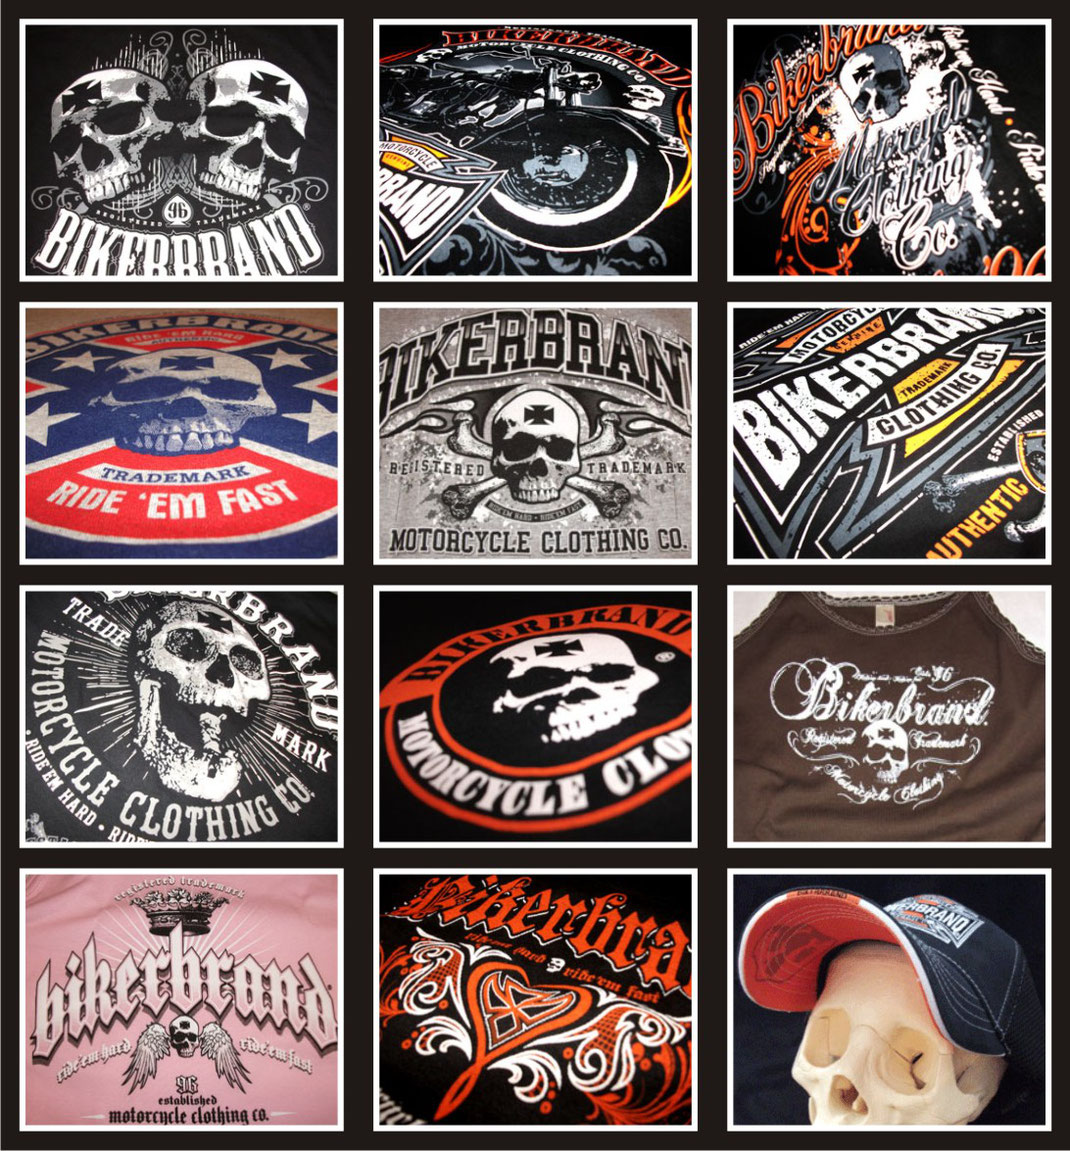 Bikerbrand t-shirt, collage